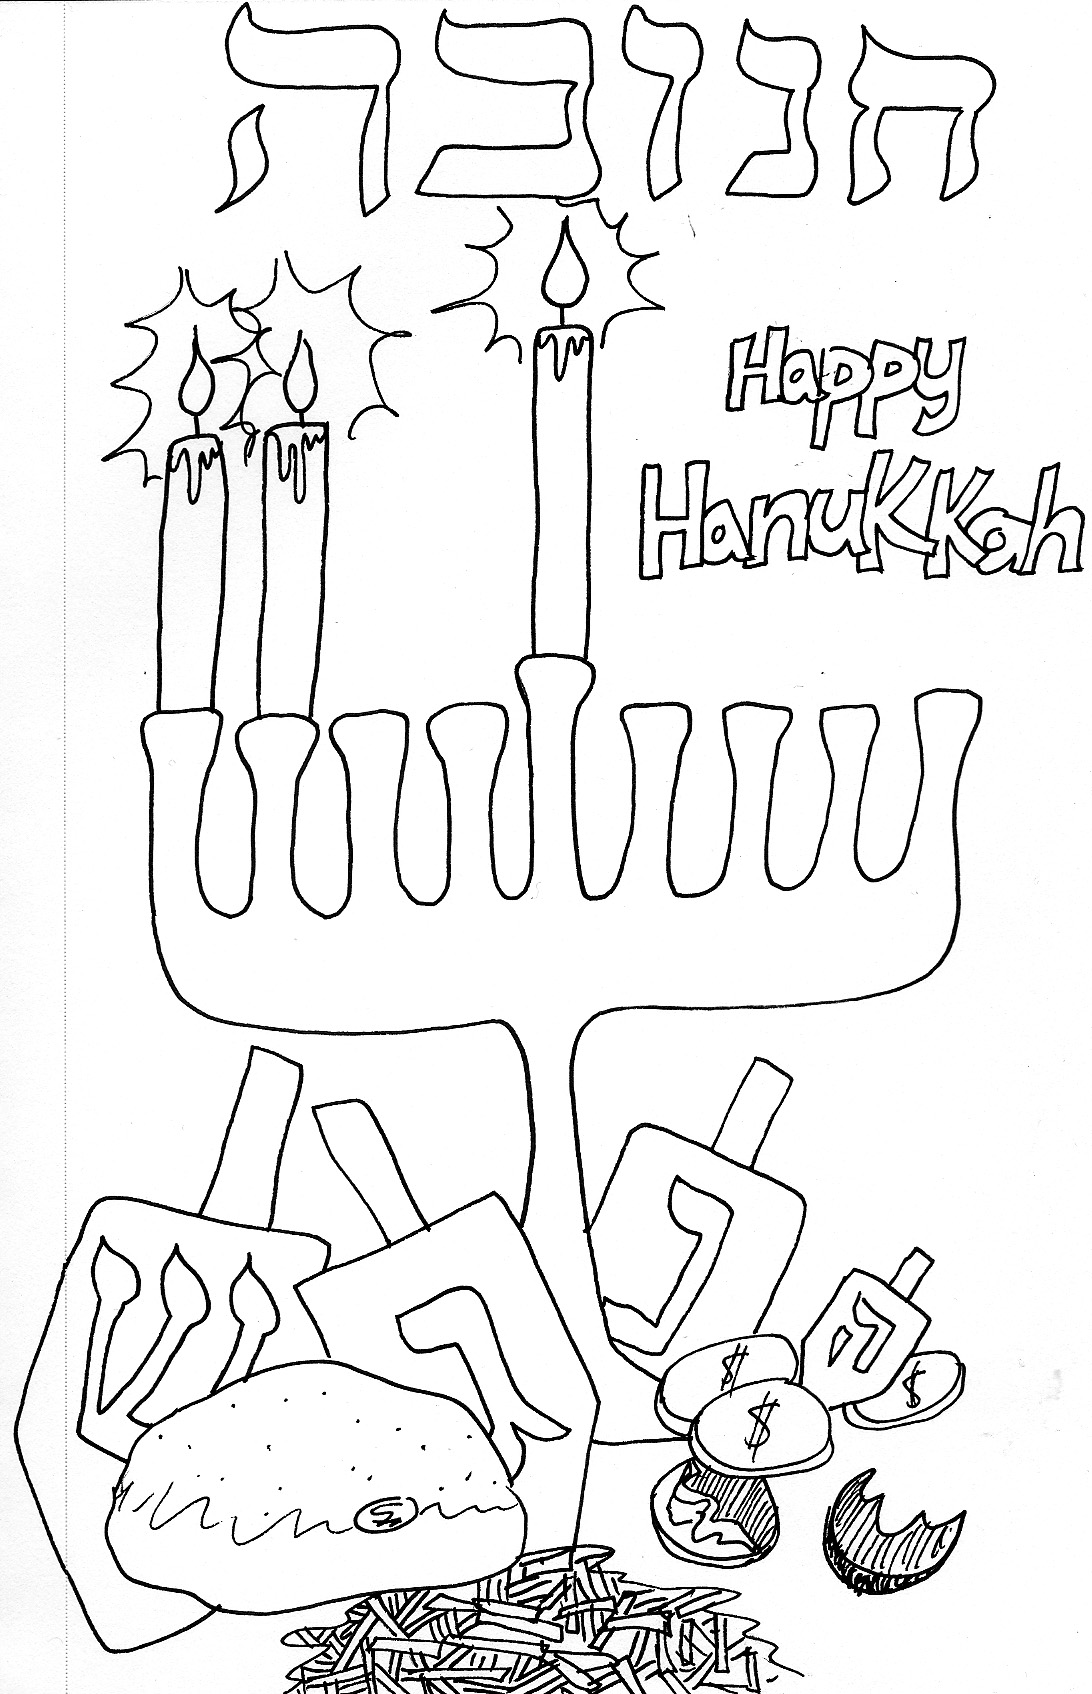 It's just an image of Exceptional Fun Printable Coloring Pages